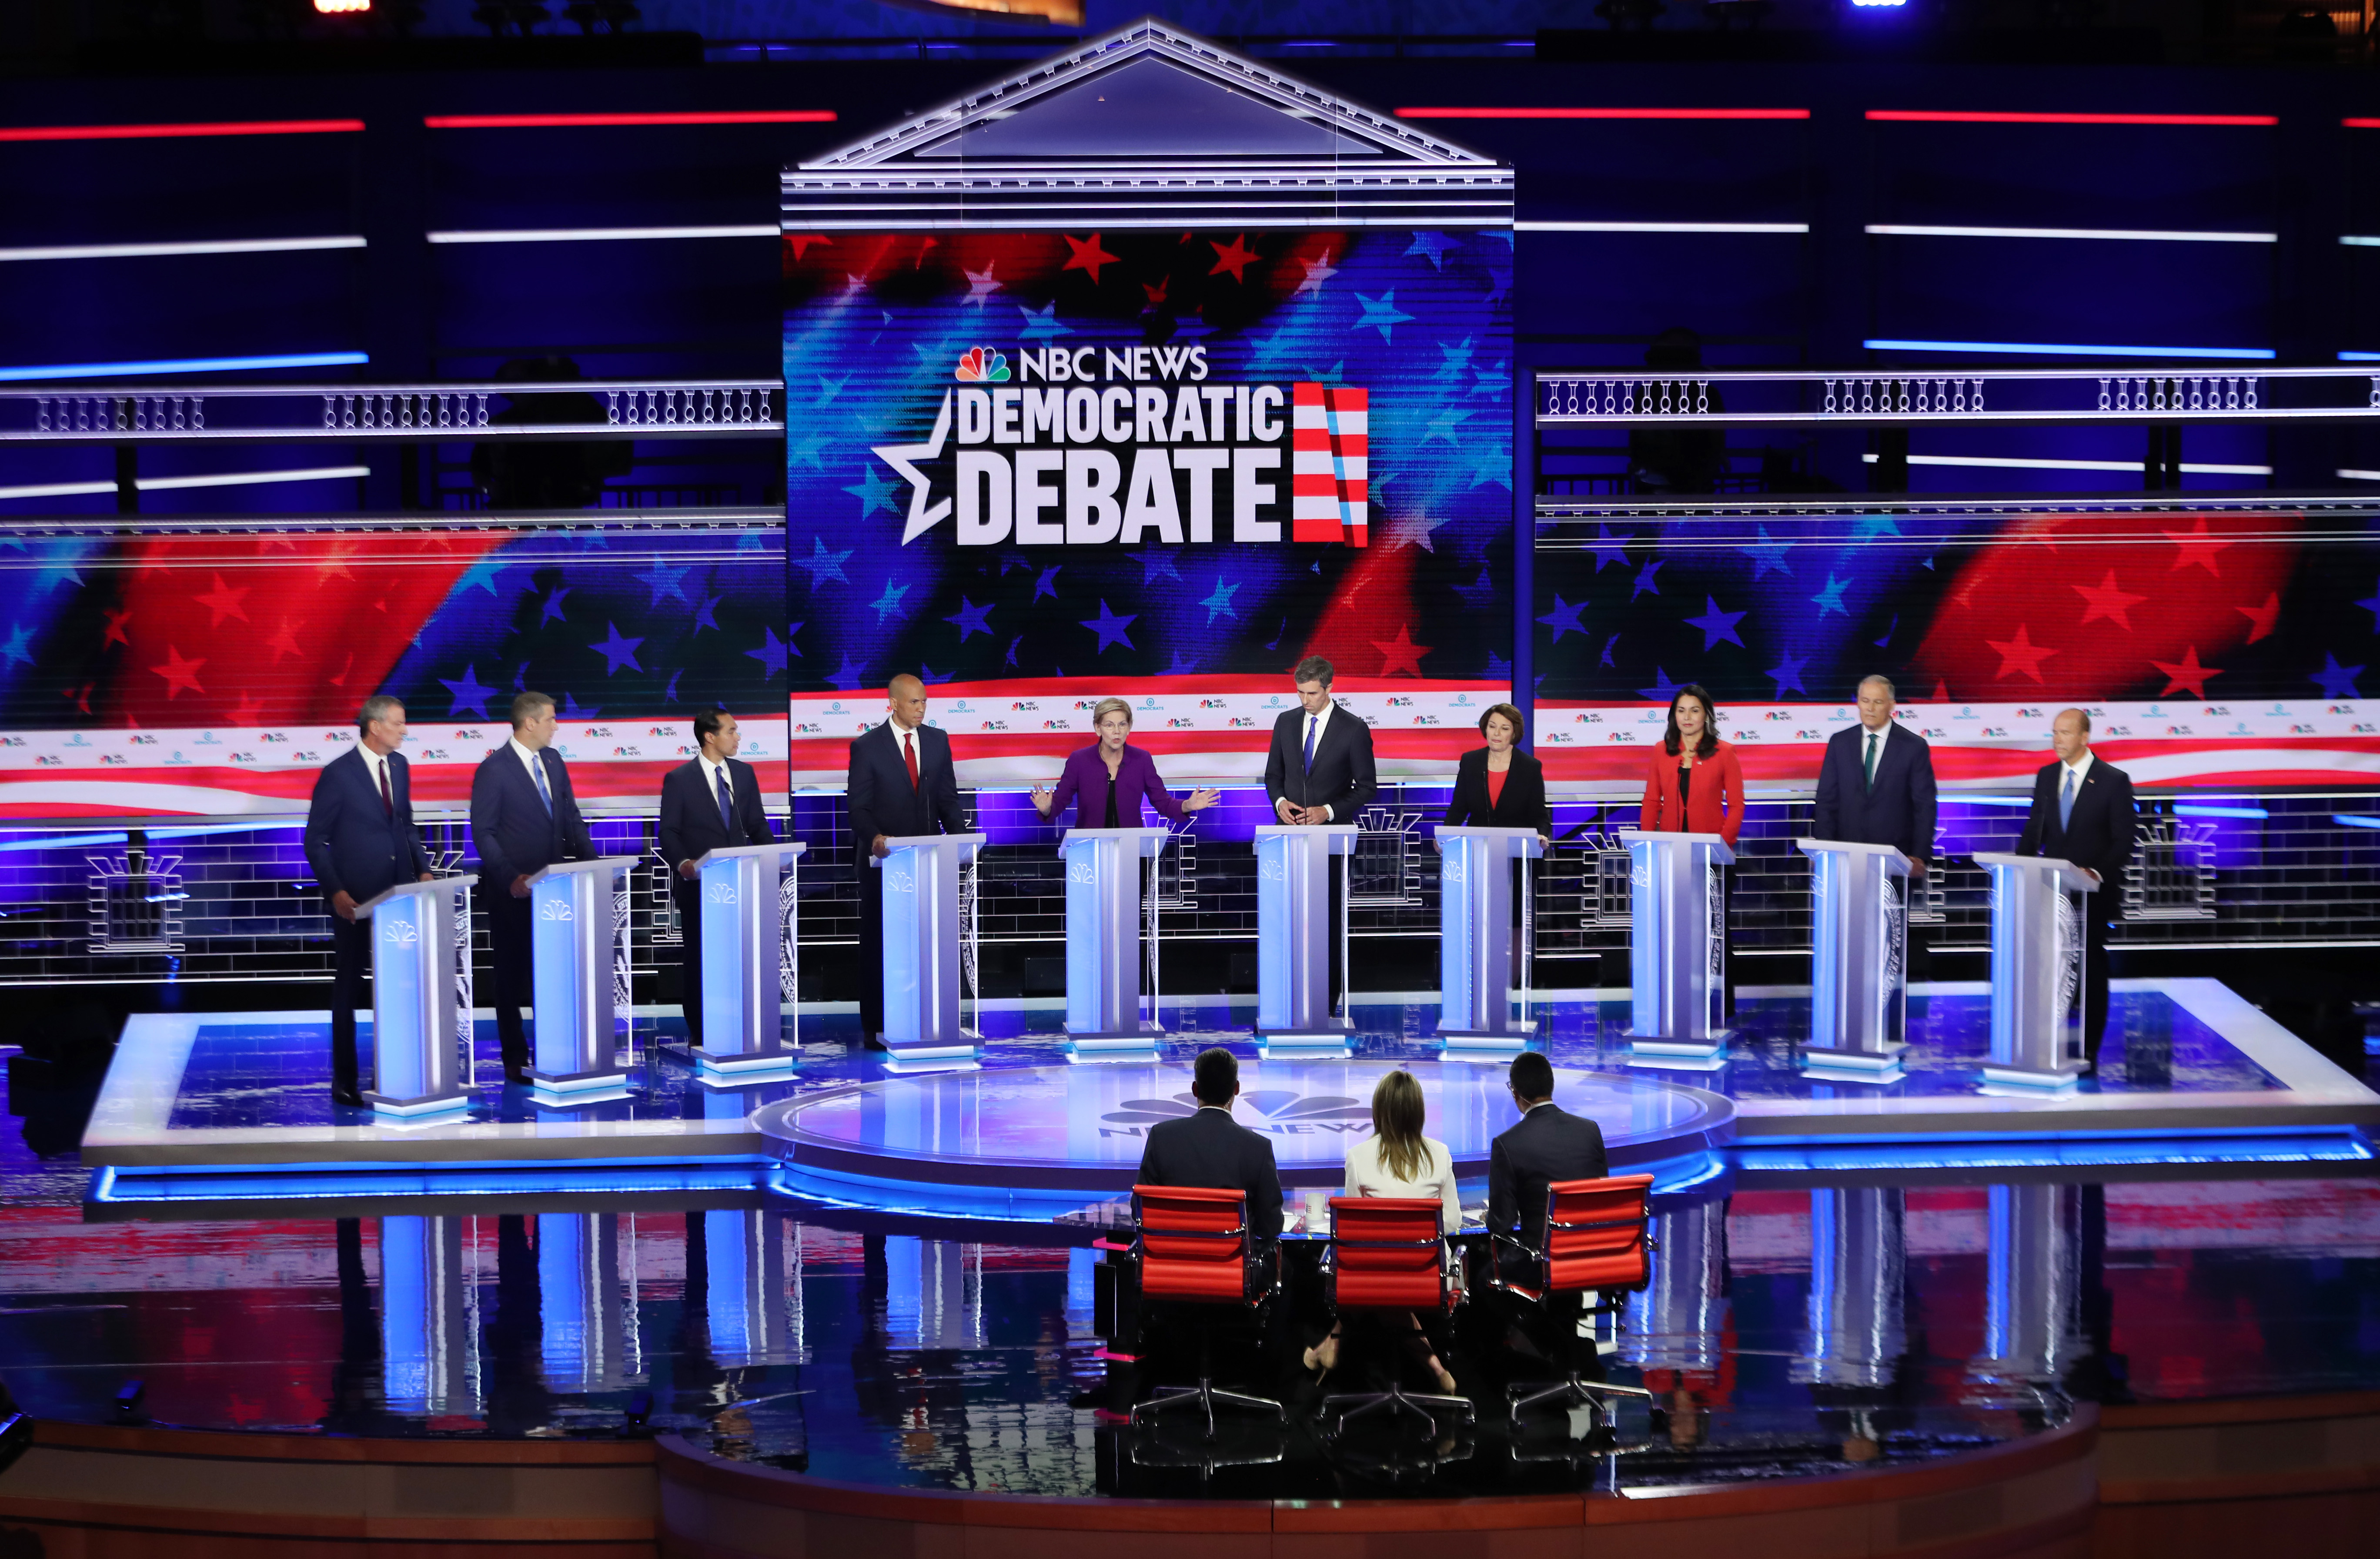 The top 3 foreign policy moments of the first Democratic debate